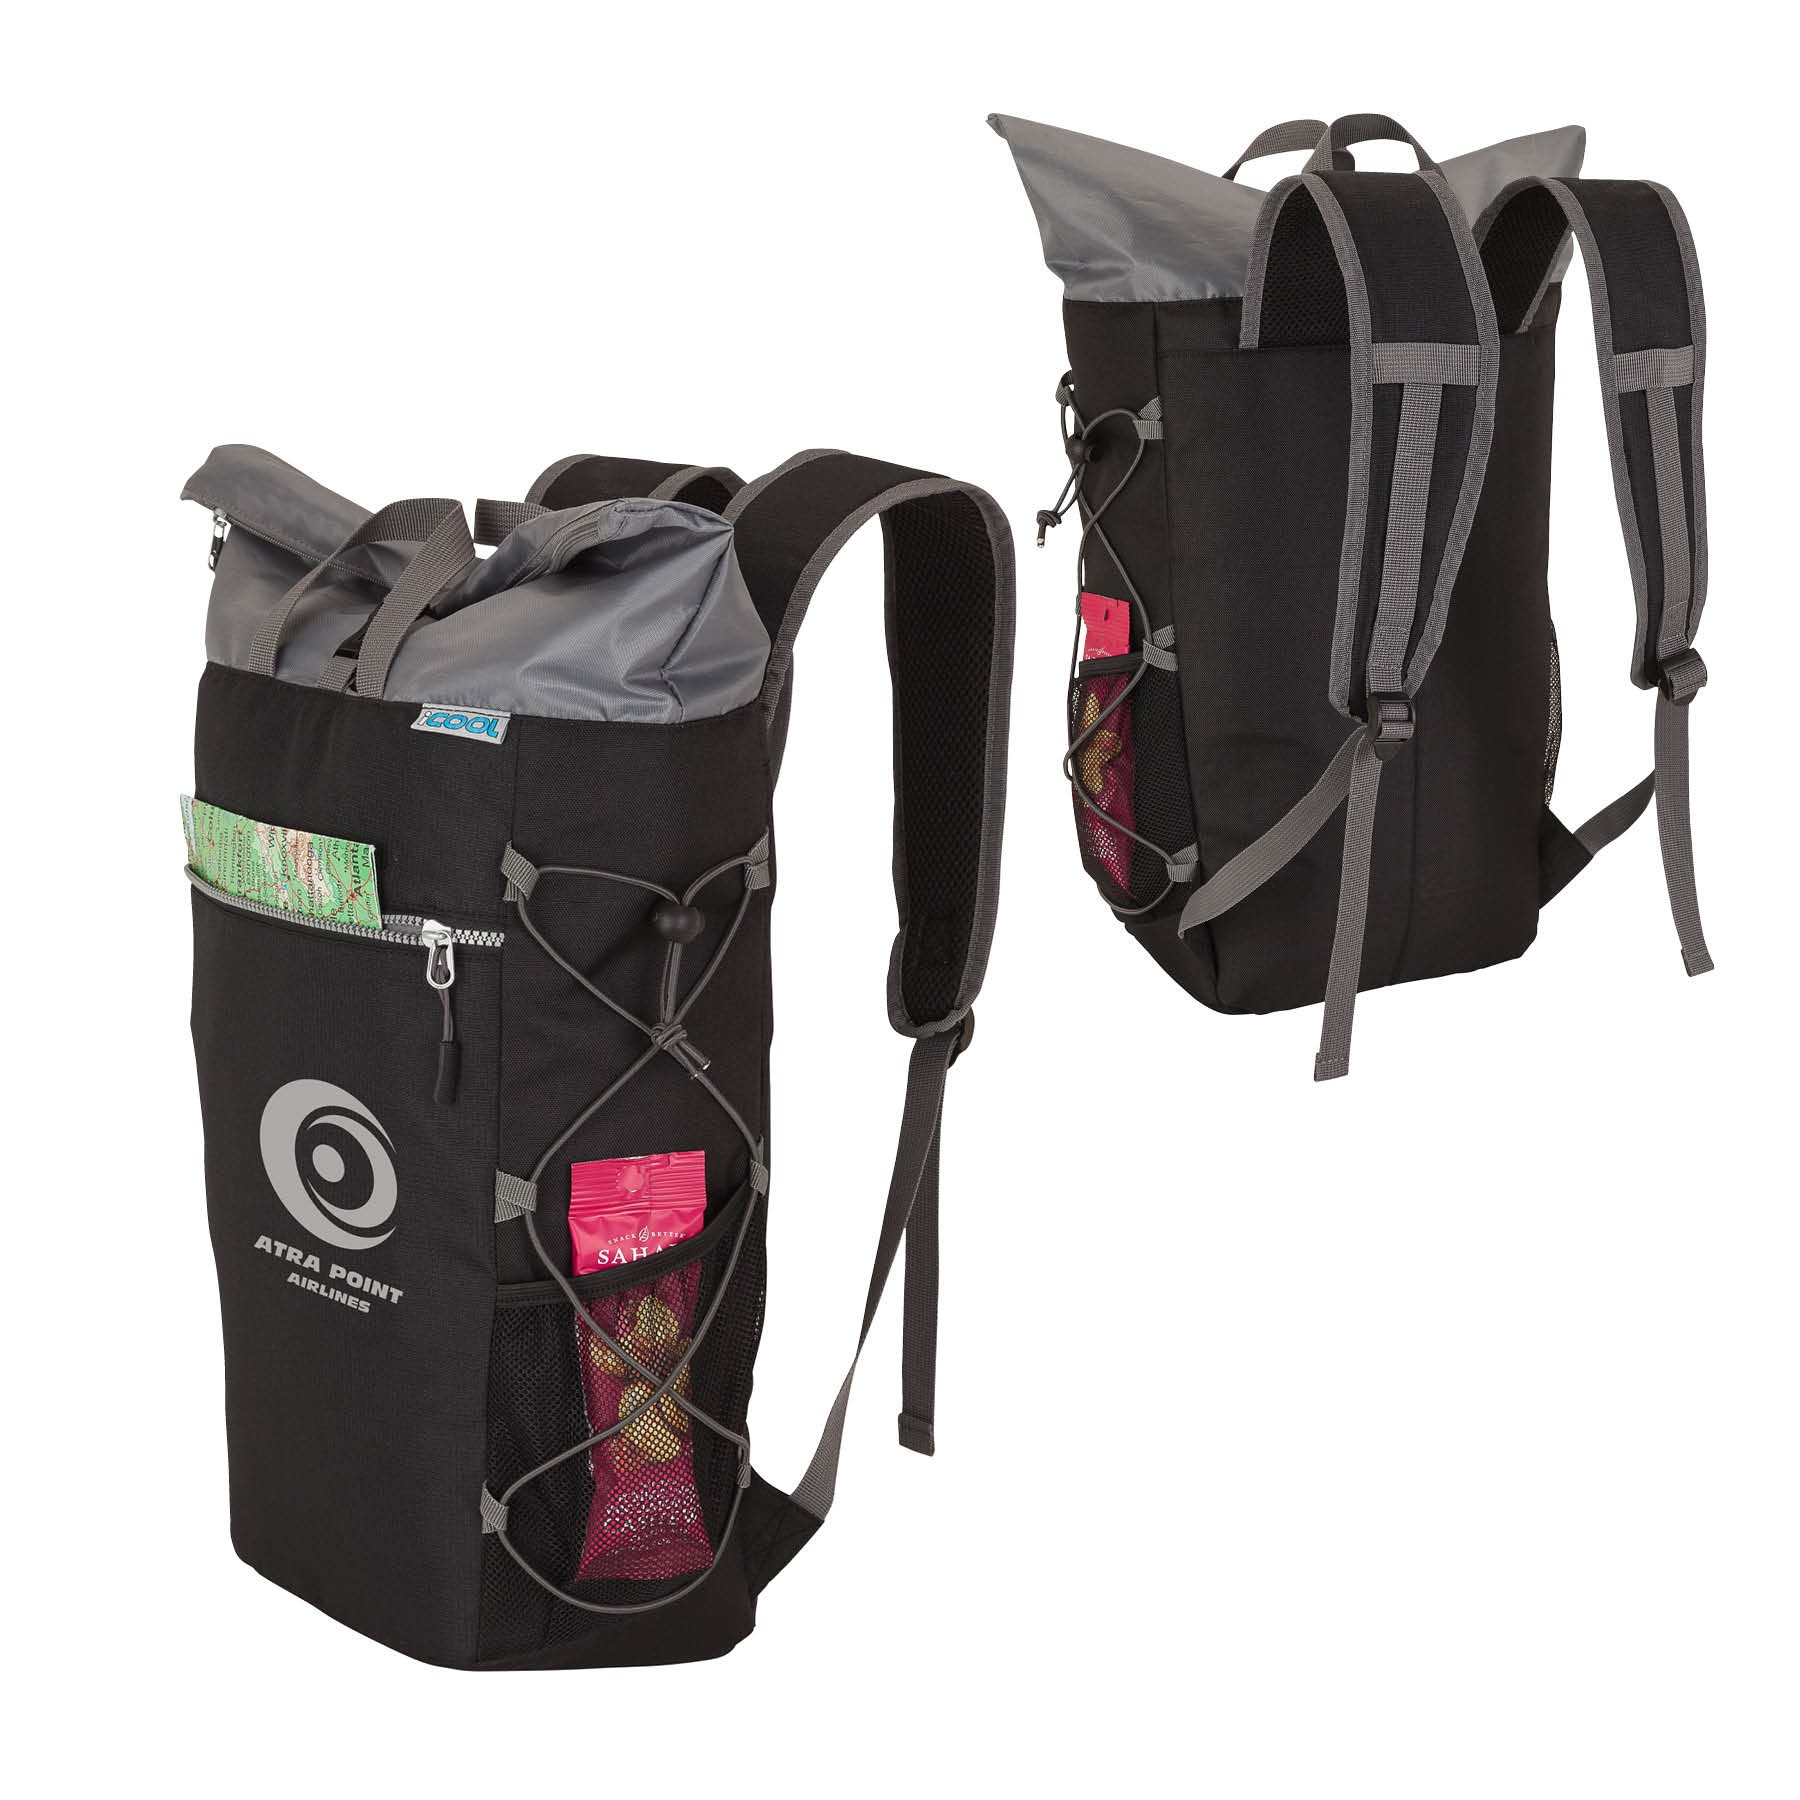 icool174 cooler backpack logo branded items